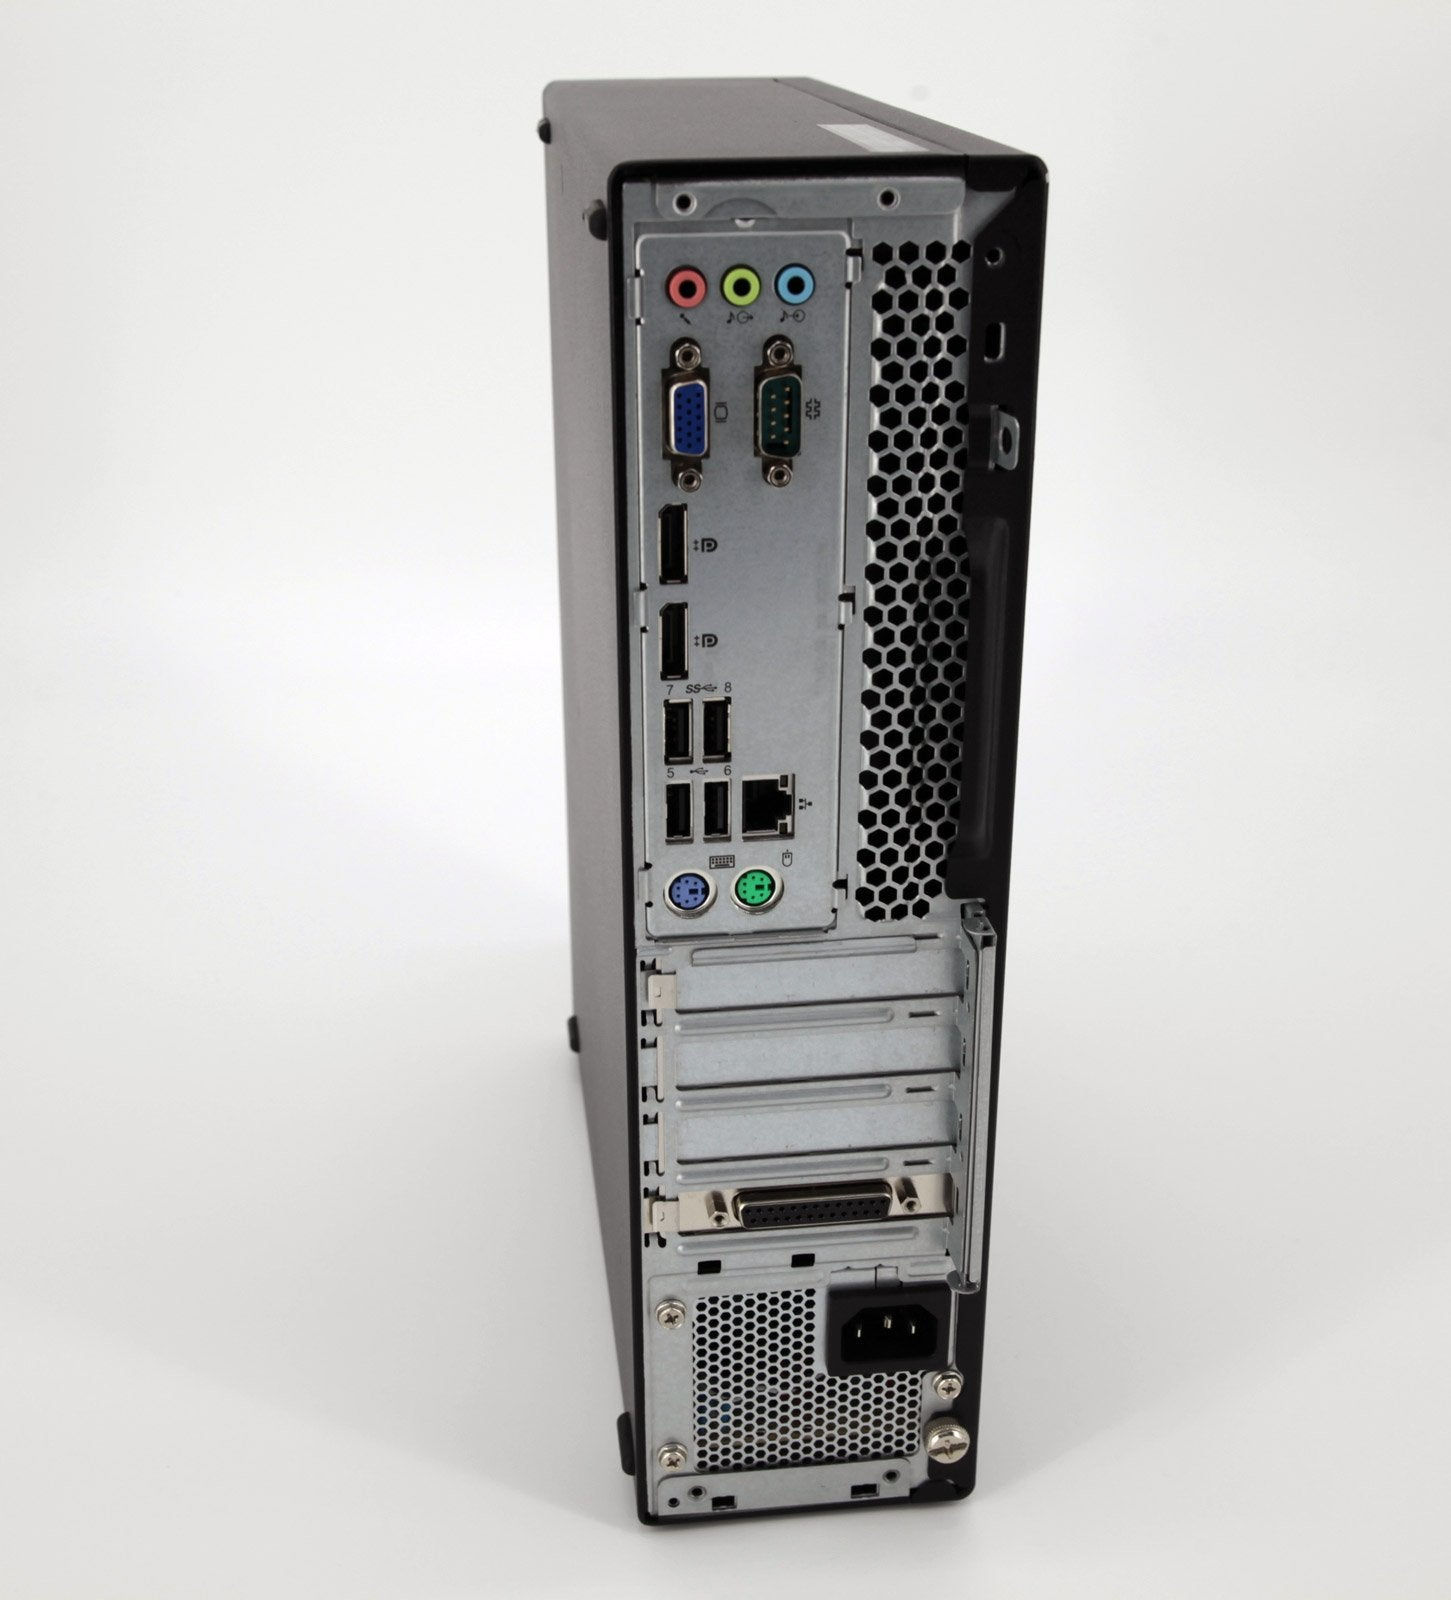 Lenovo ThinkCentre M710s SFF Tower PC: Core i5-7400 256GB, 8GB RAM, Warranty VAT - CruiseTech